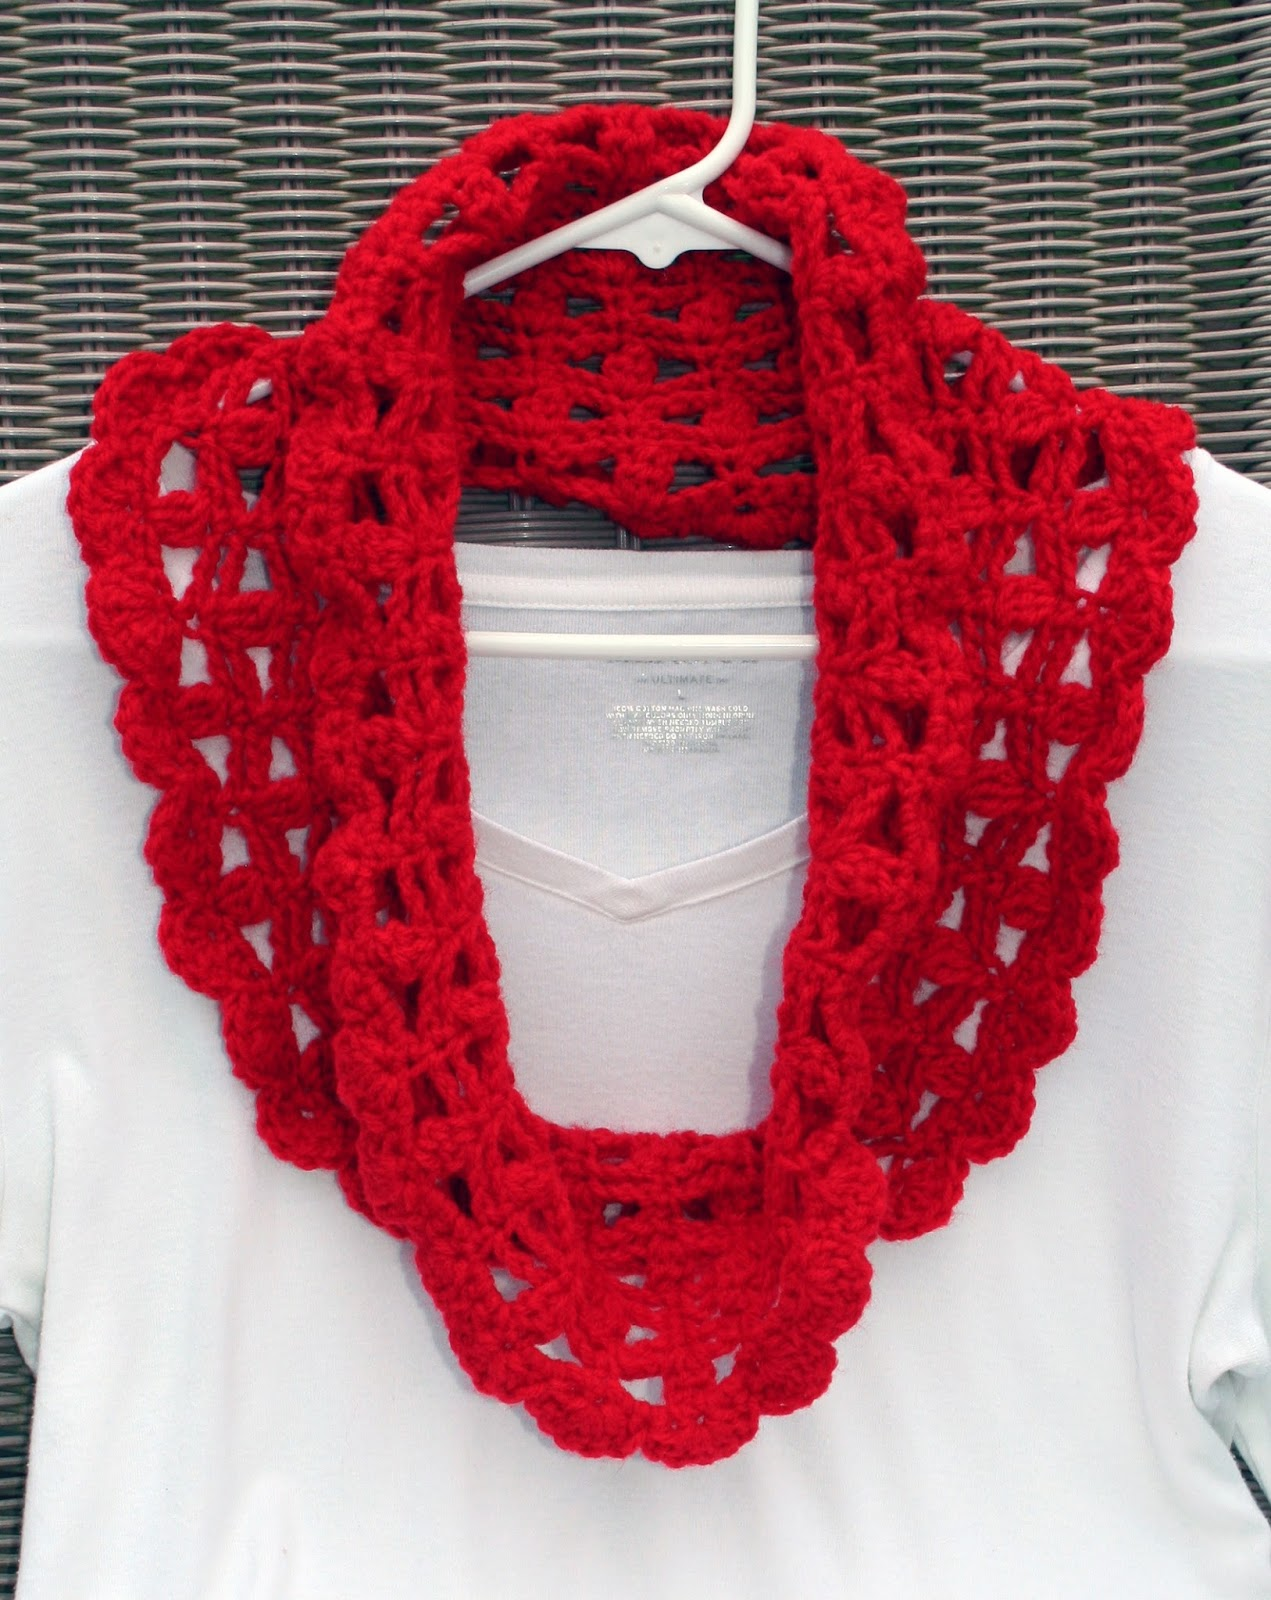 Free Crochet Pattern For A Cowl : Tampa Bay Crochet: Free Crochet Pattern: Lacy Crimson Cowl ...